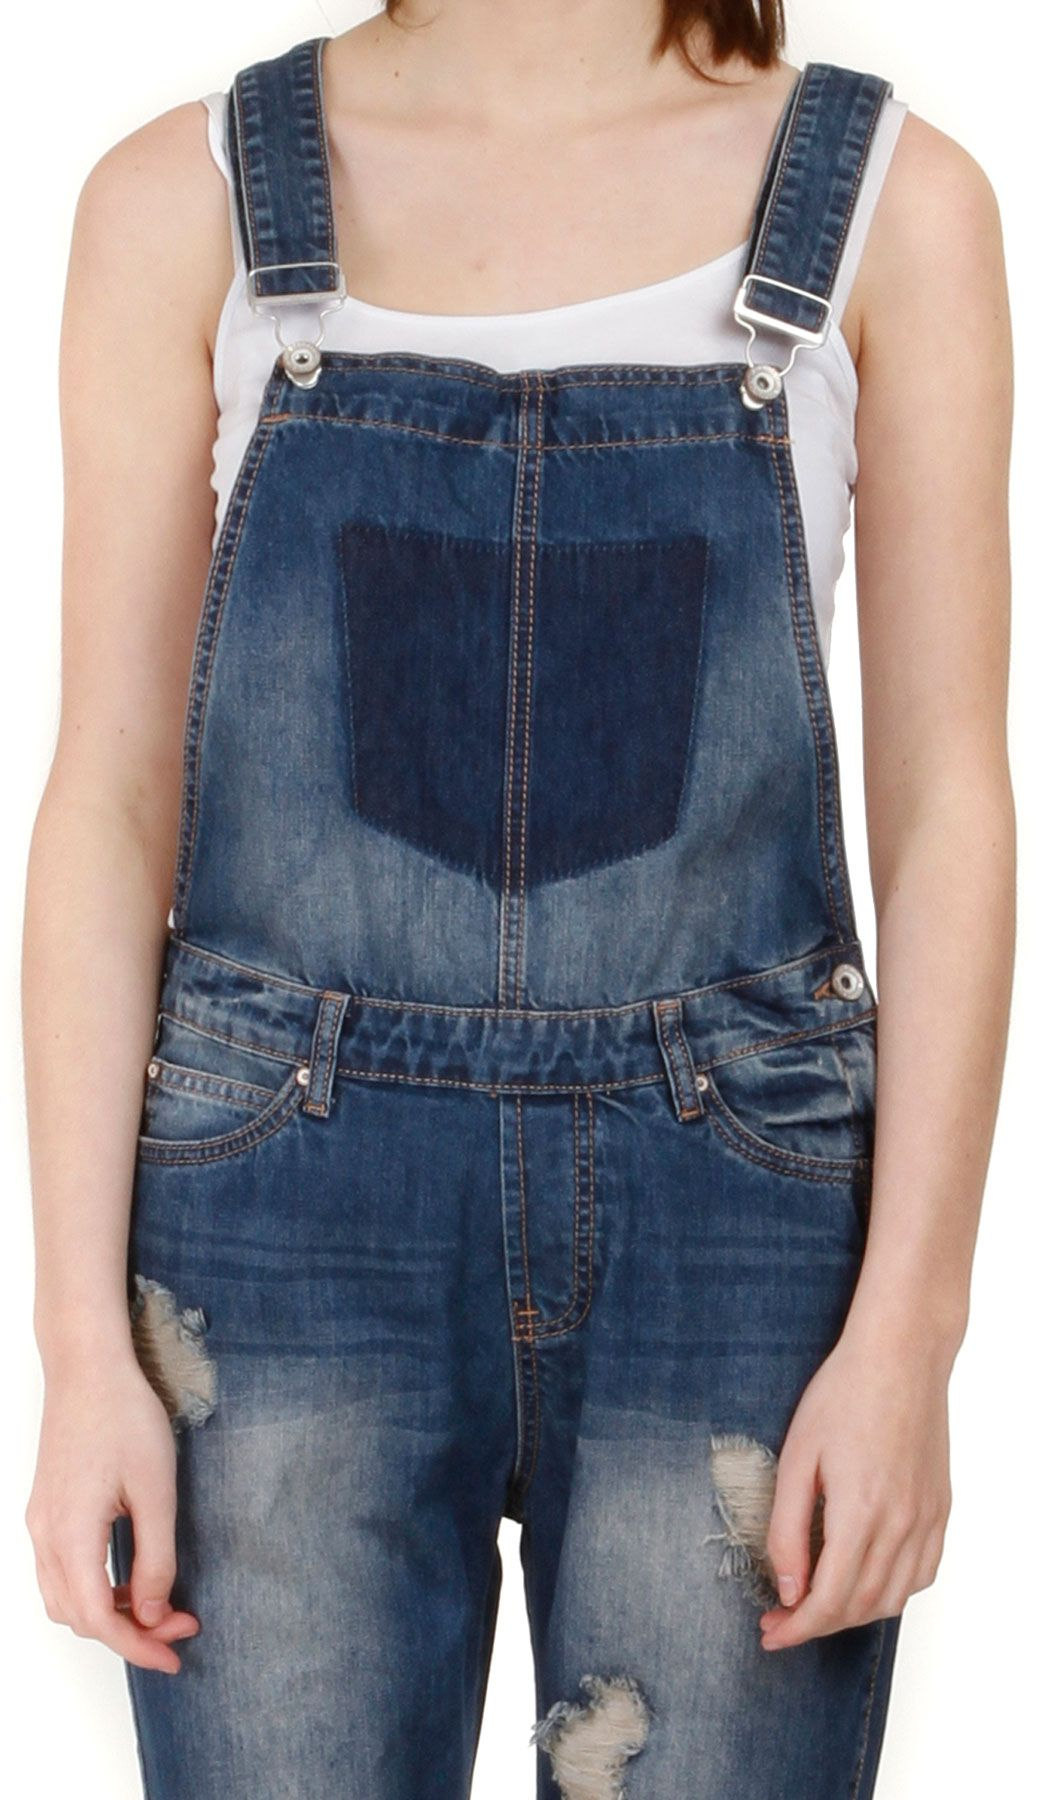 942f9829e Women's Destroyed Denim #Dungarees. Midwash Three-quarter length distressed  denim #Overalls